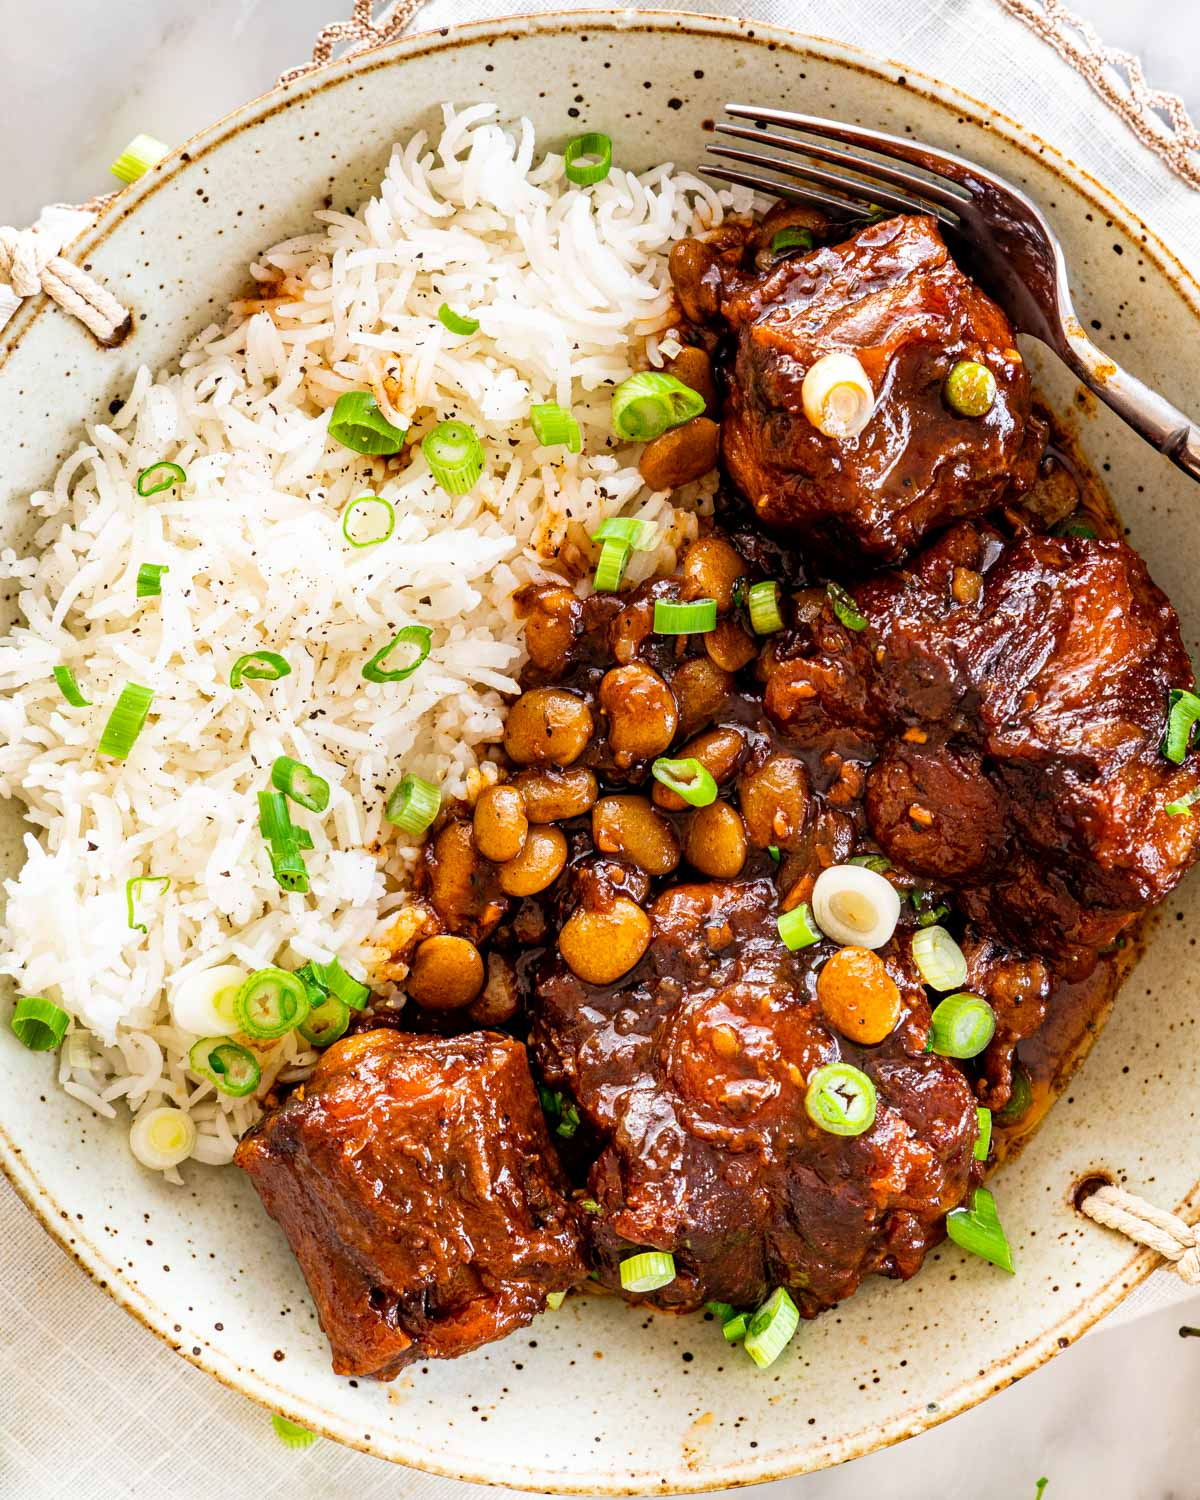 overhead shot of oxtail stew with rice on a plate garnished with green onions